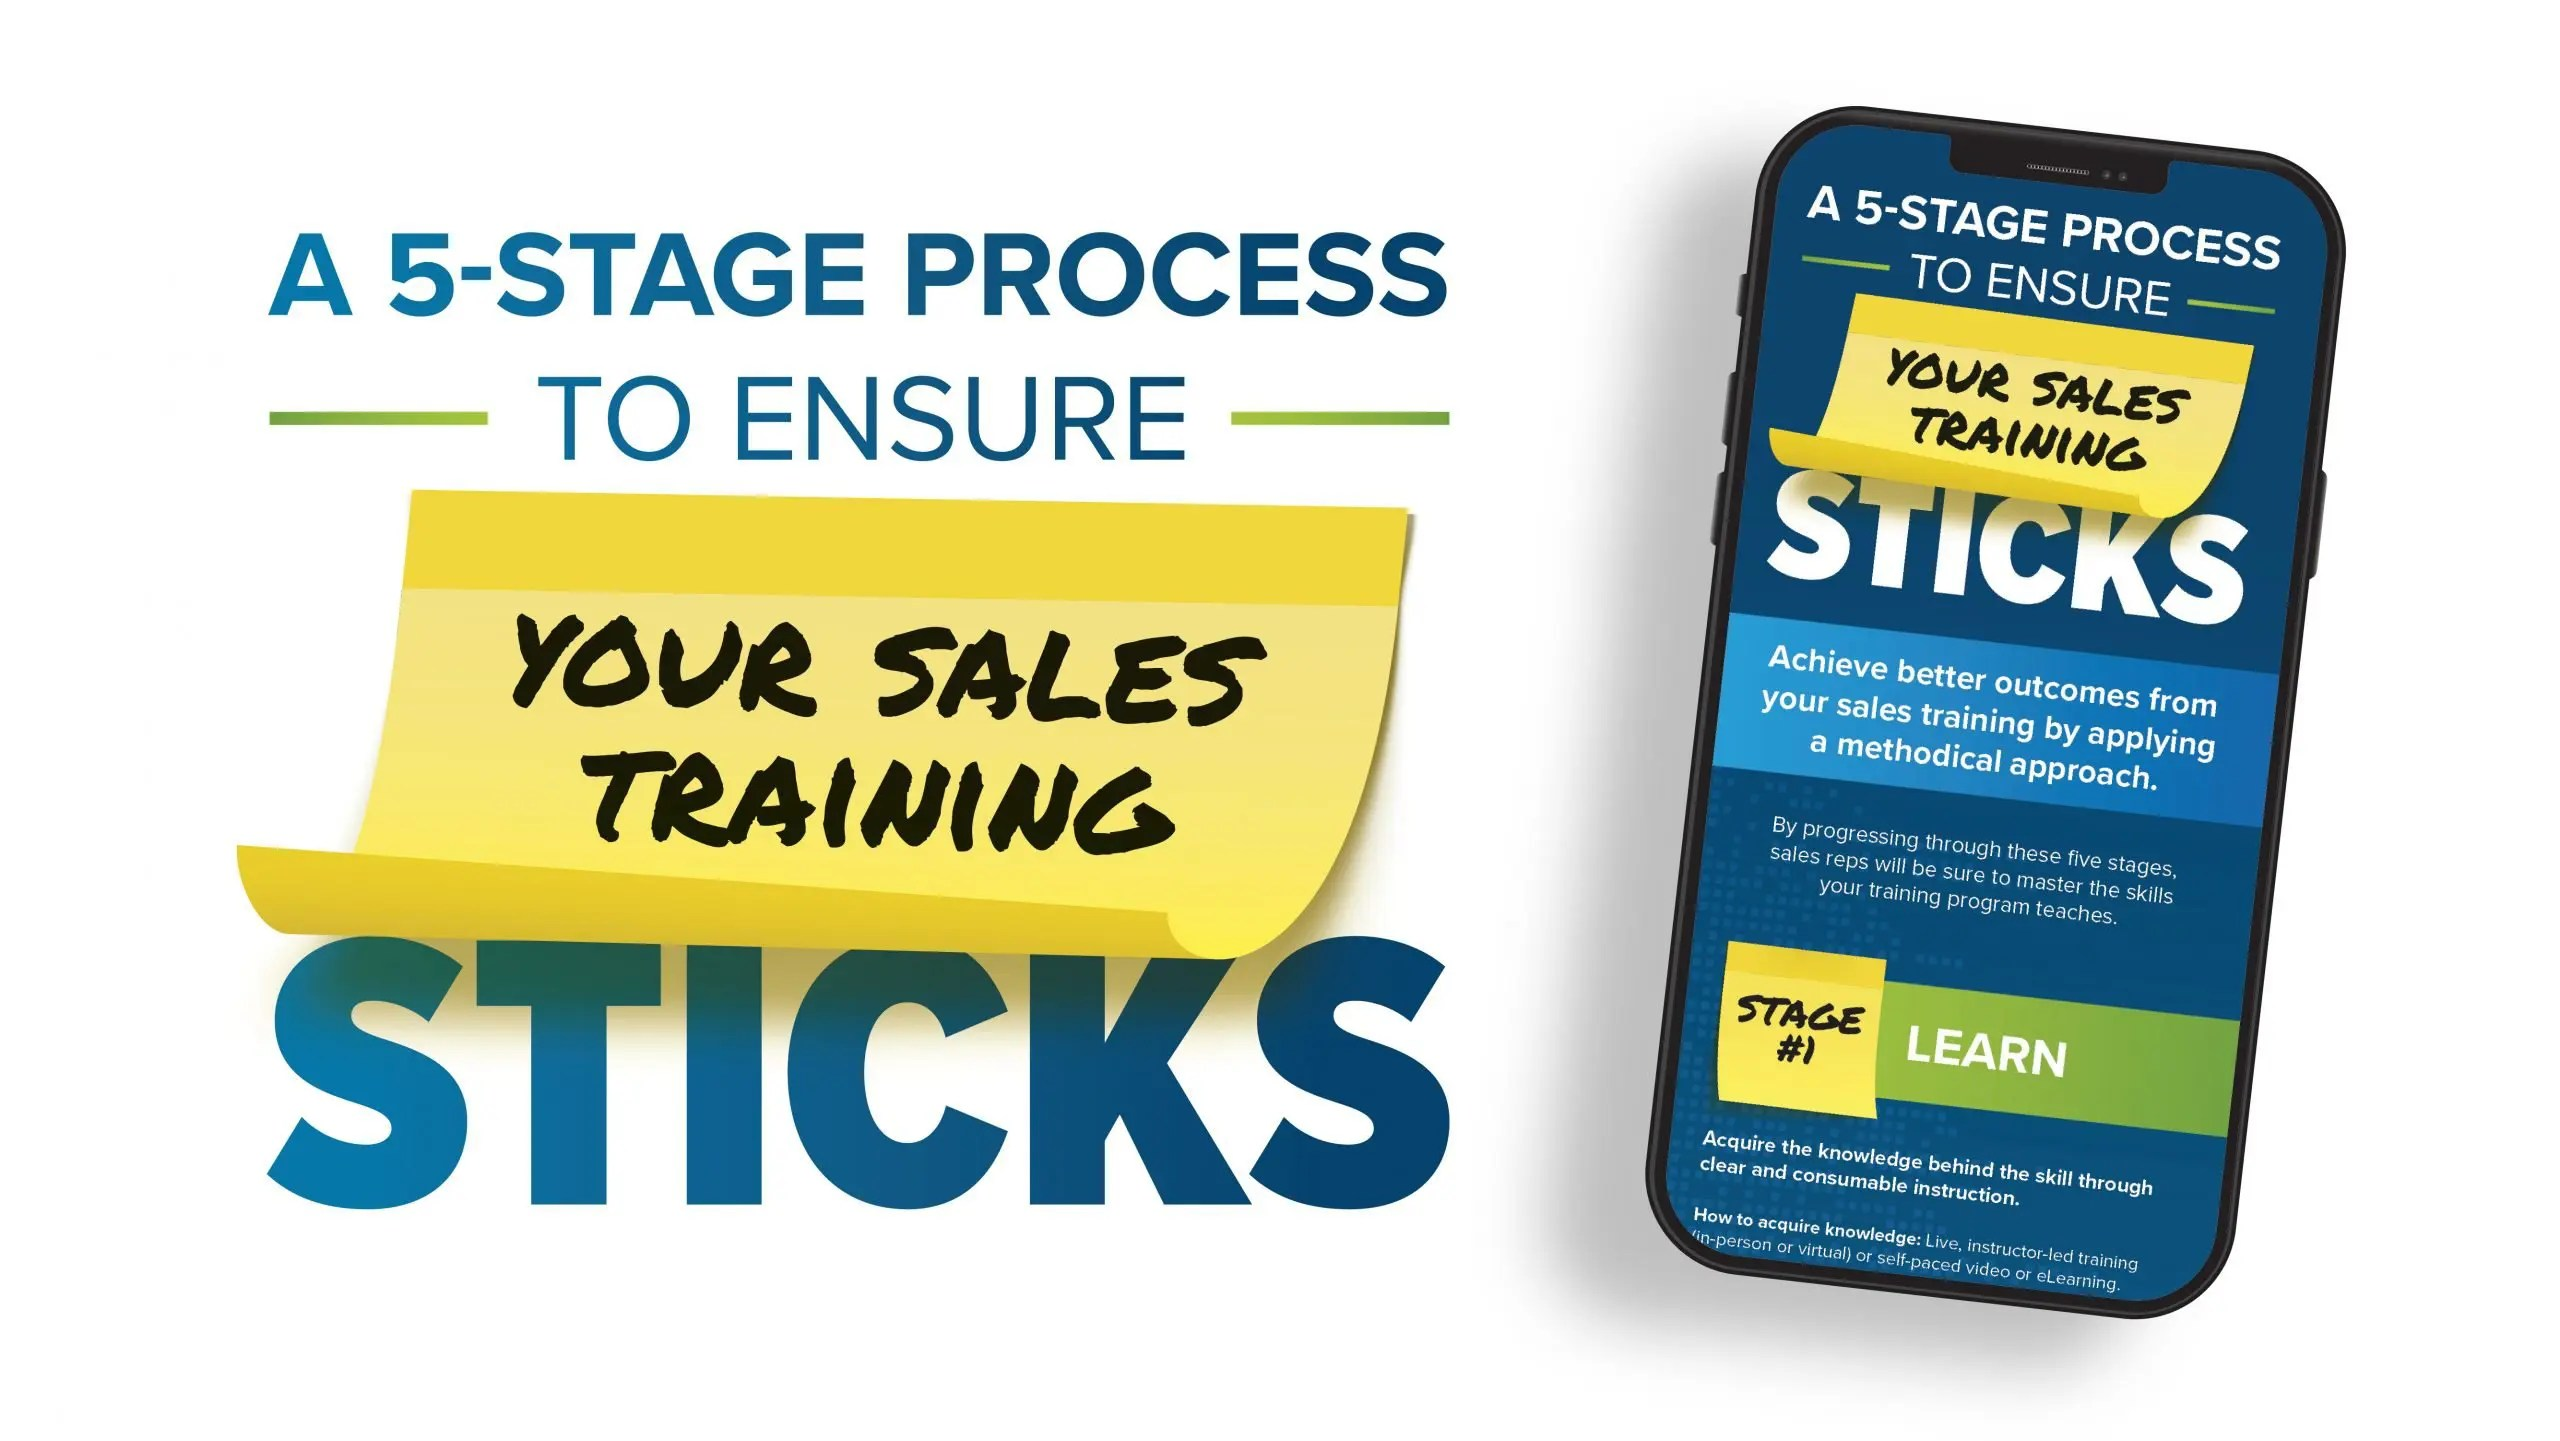 5 Stages to Ensure Your Sales Training Sticks